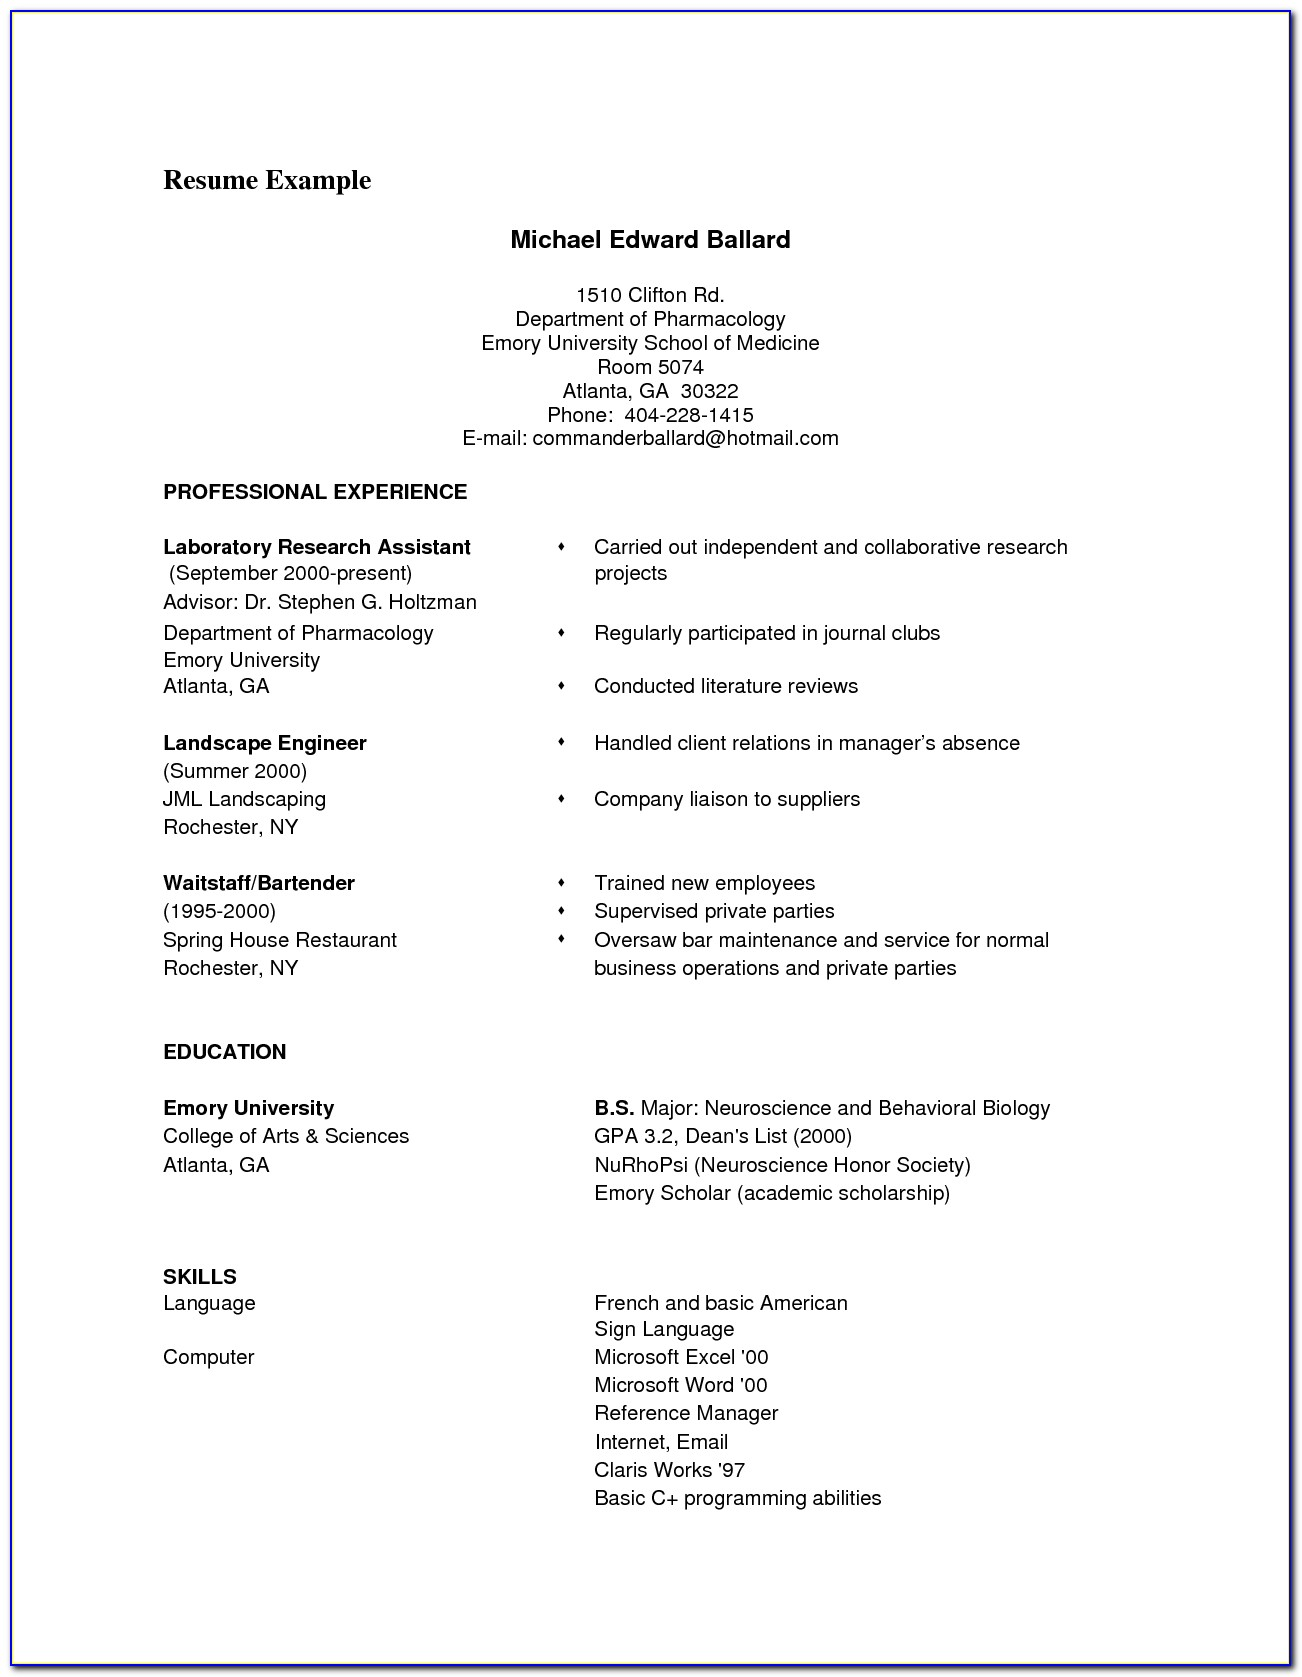 A Good Resume Format Pdf Civil Engineer Sample Resume For Fresher Inside Good Examples Of Resumes